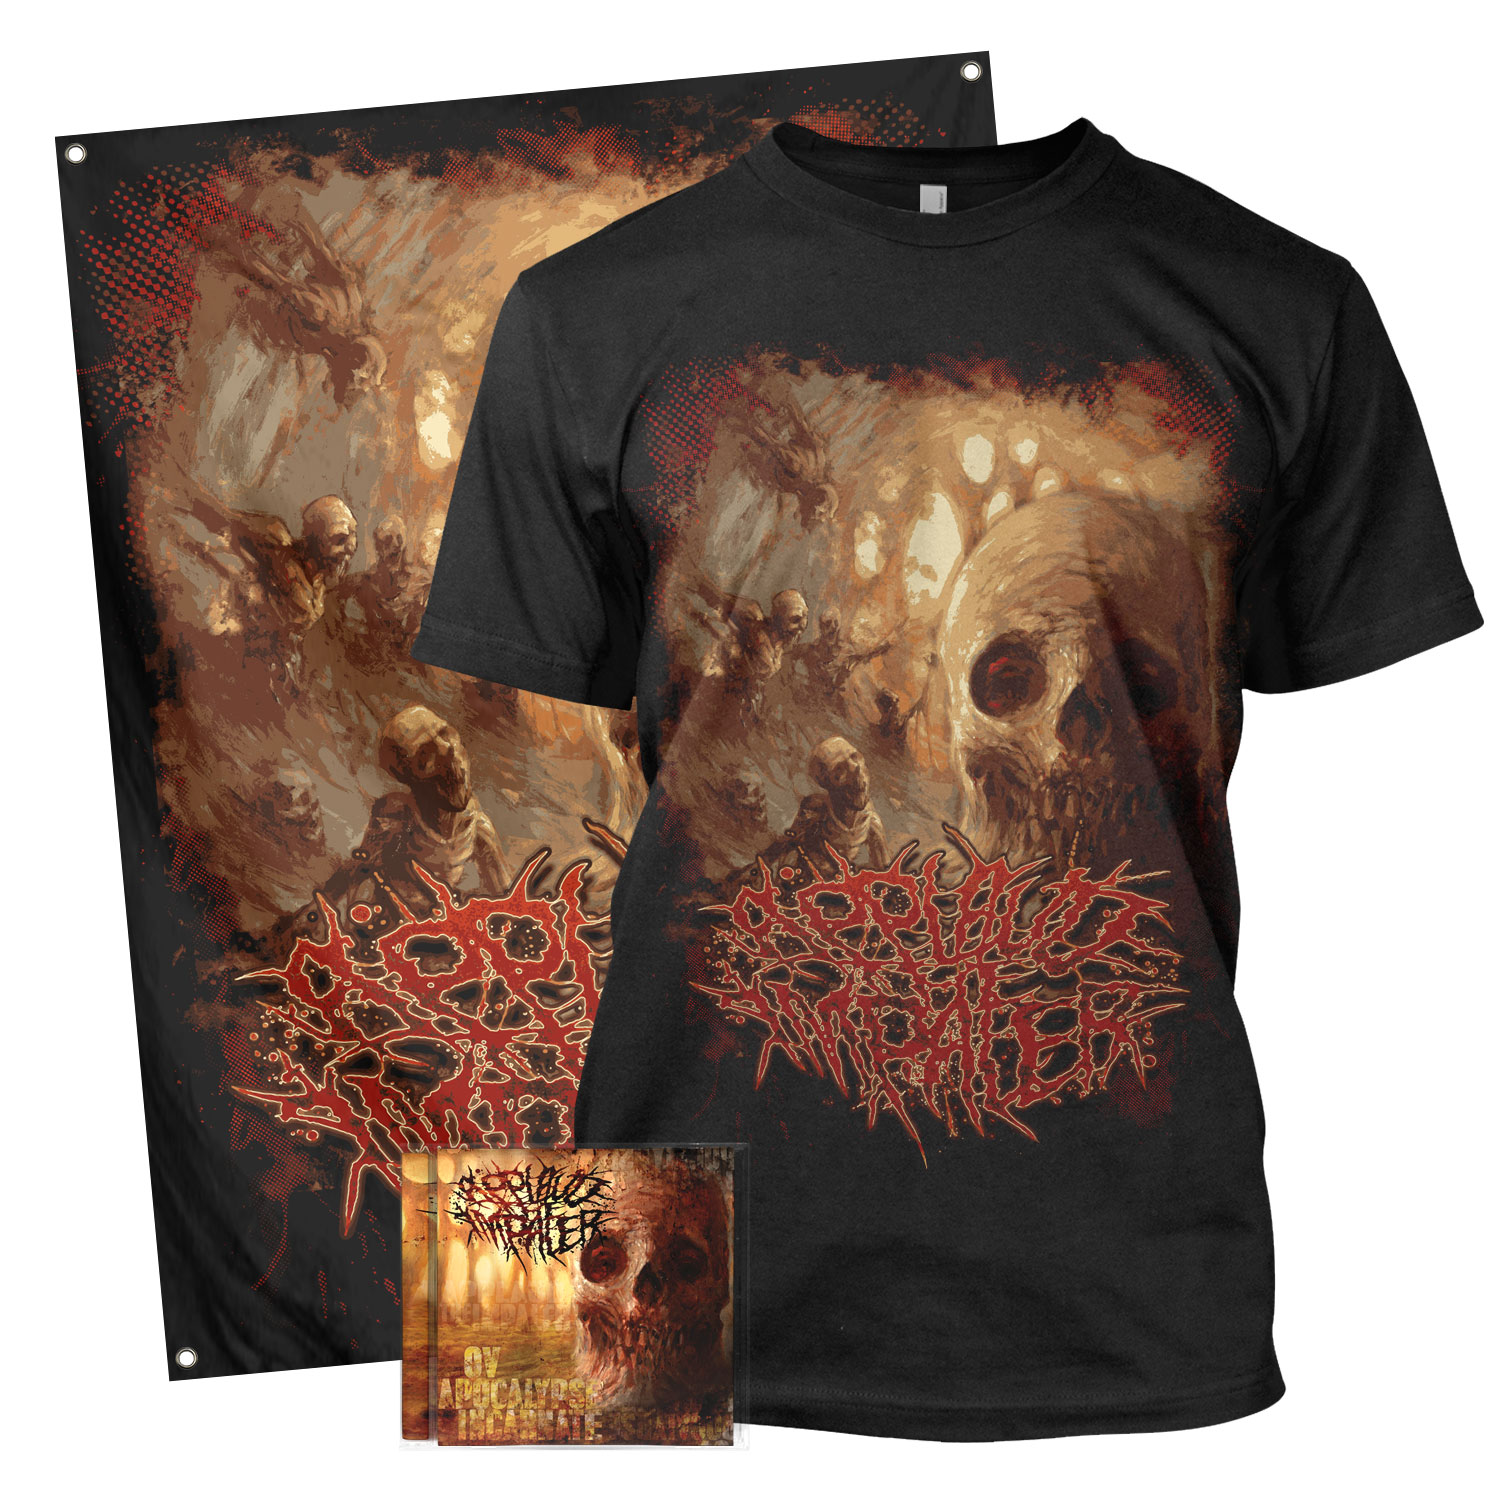 Ov Apocalypse Incarnate Tee + CD Bundle